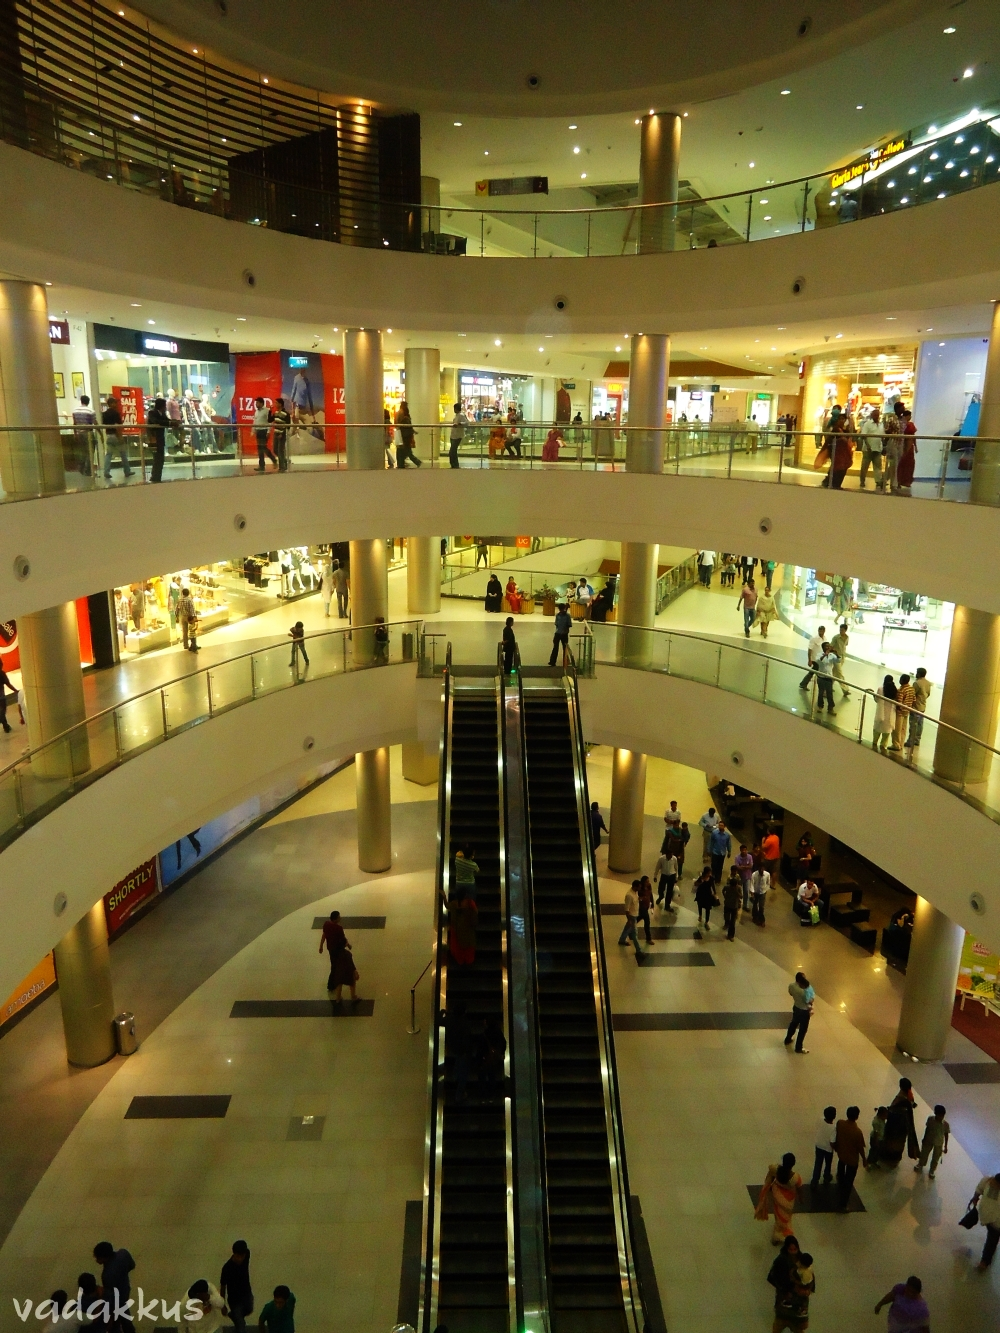 Inside the Phoenix Marketcity Mall, All 4 Levels